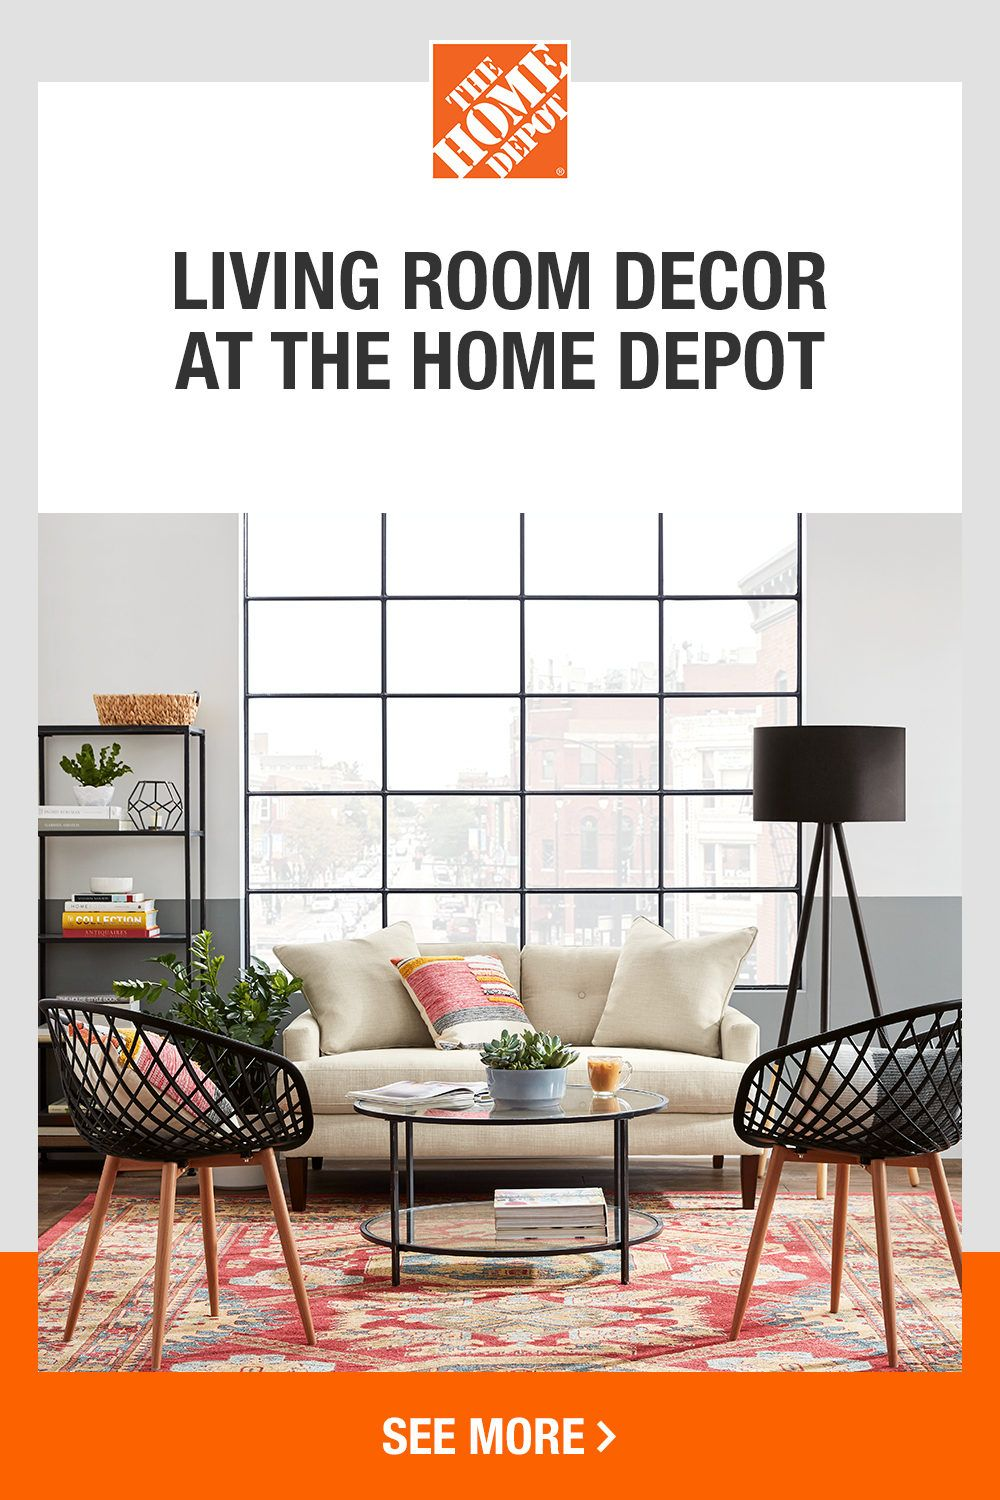 Living Room Decor at The Home Depot in 2020 | Living room decor, Room decor,  Living room